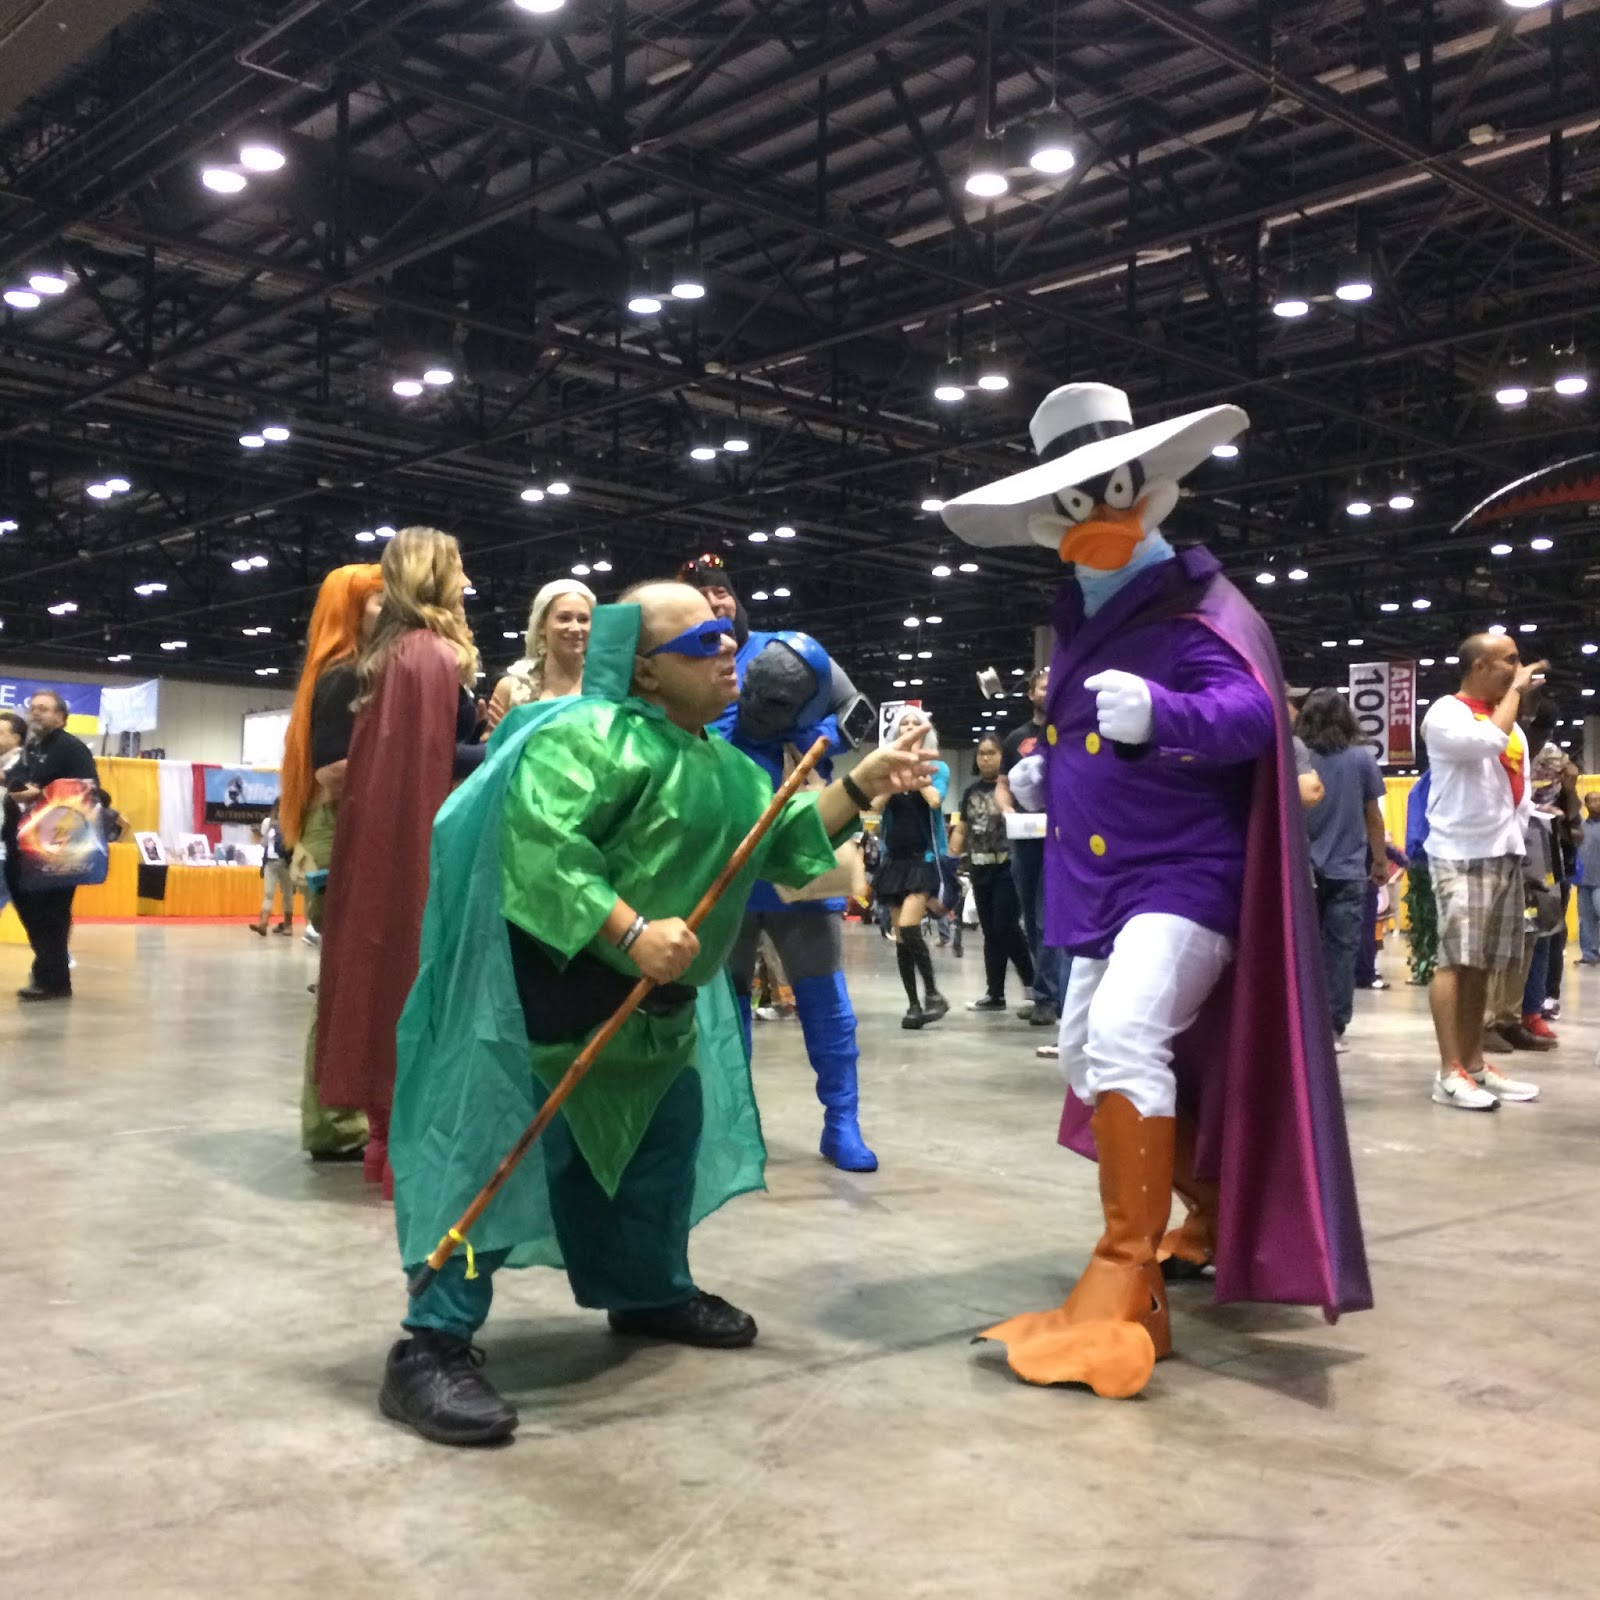 Darkwing duck cosplay